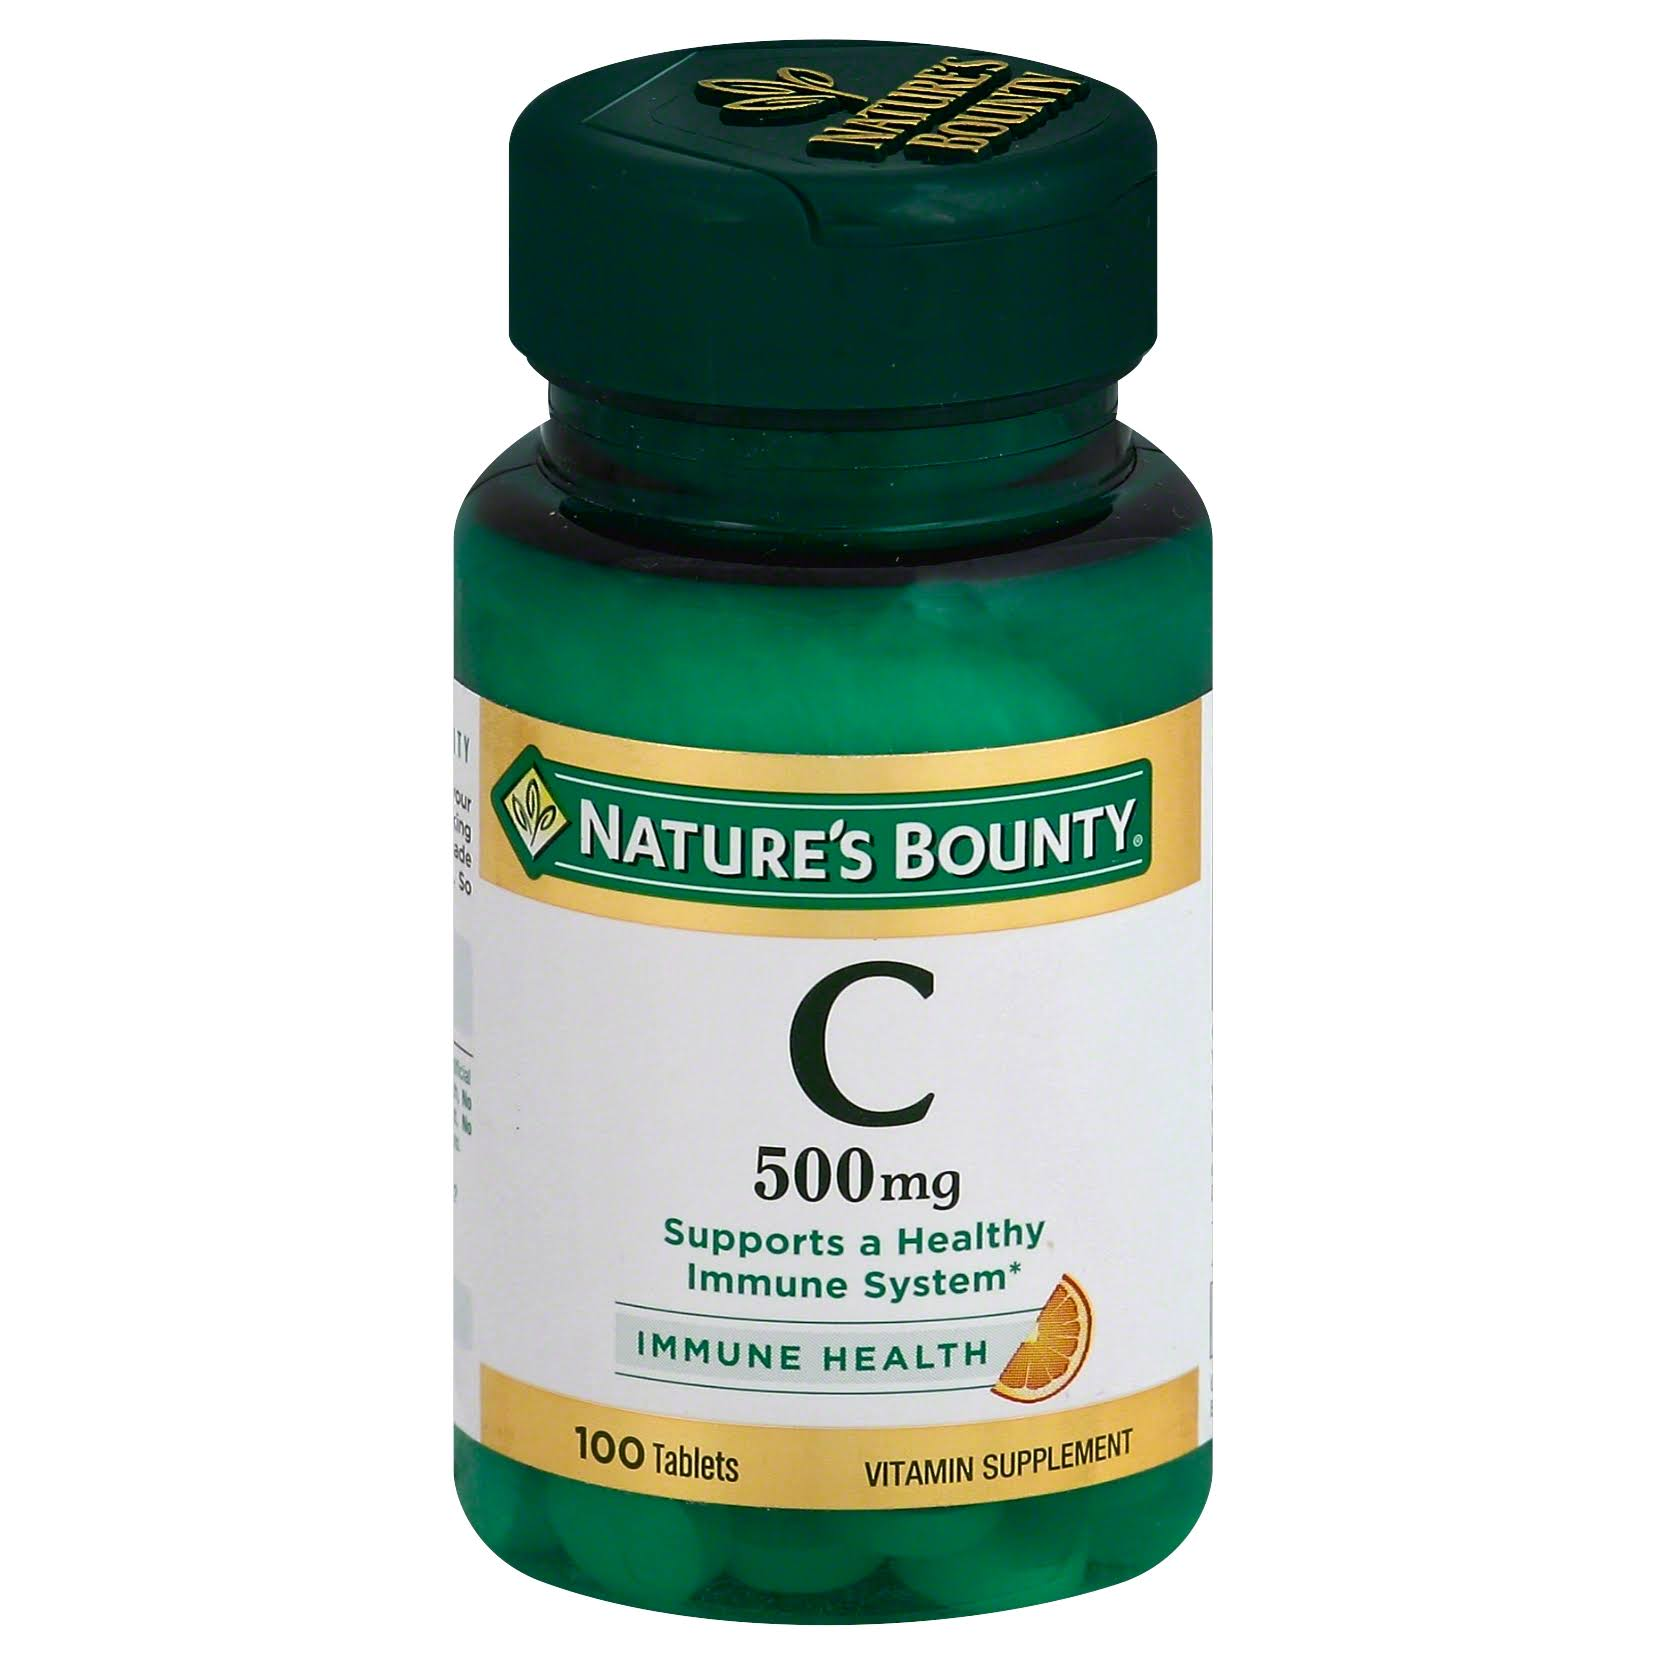 Nature's Bounty Vitamin C 500 - 100 Tablets